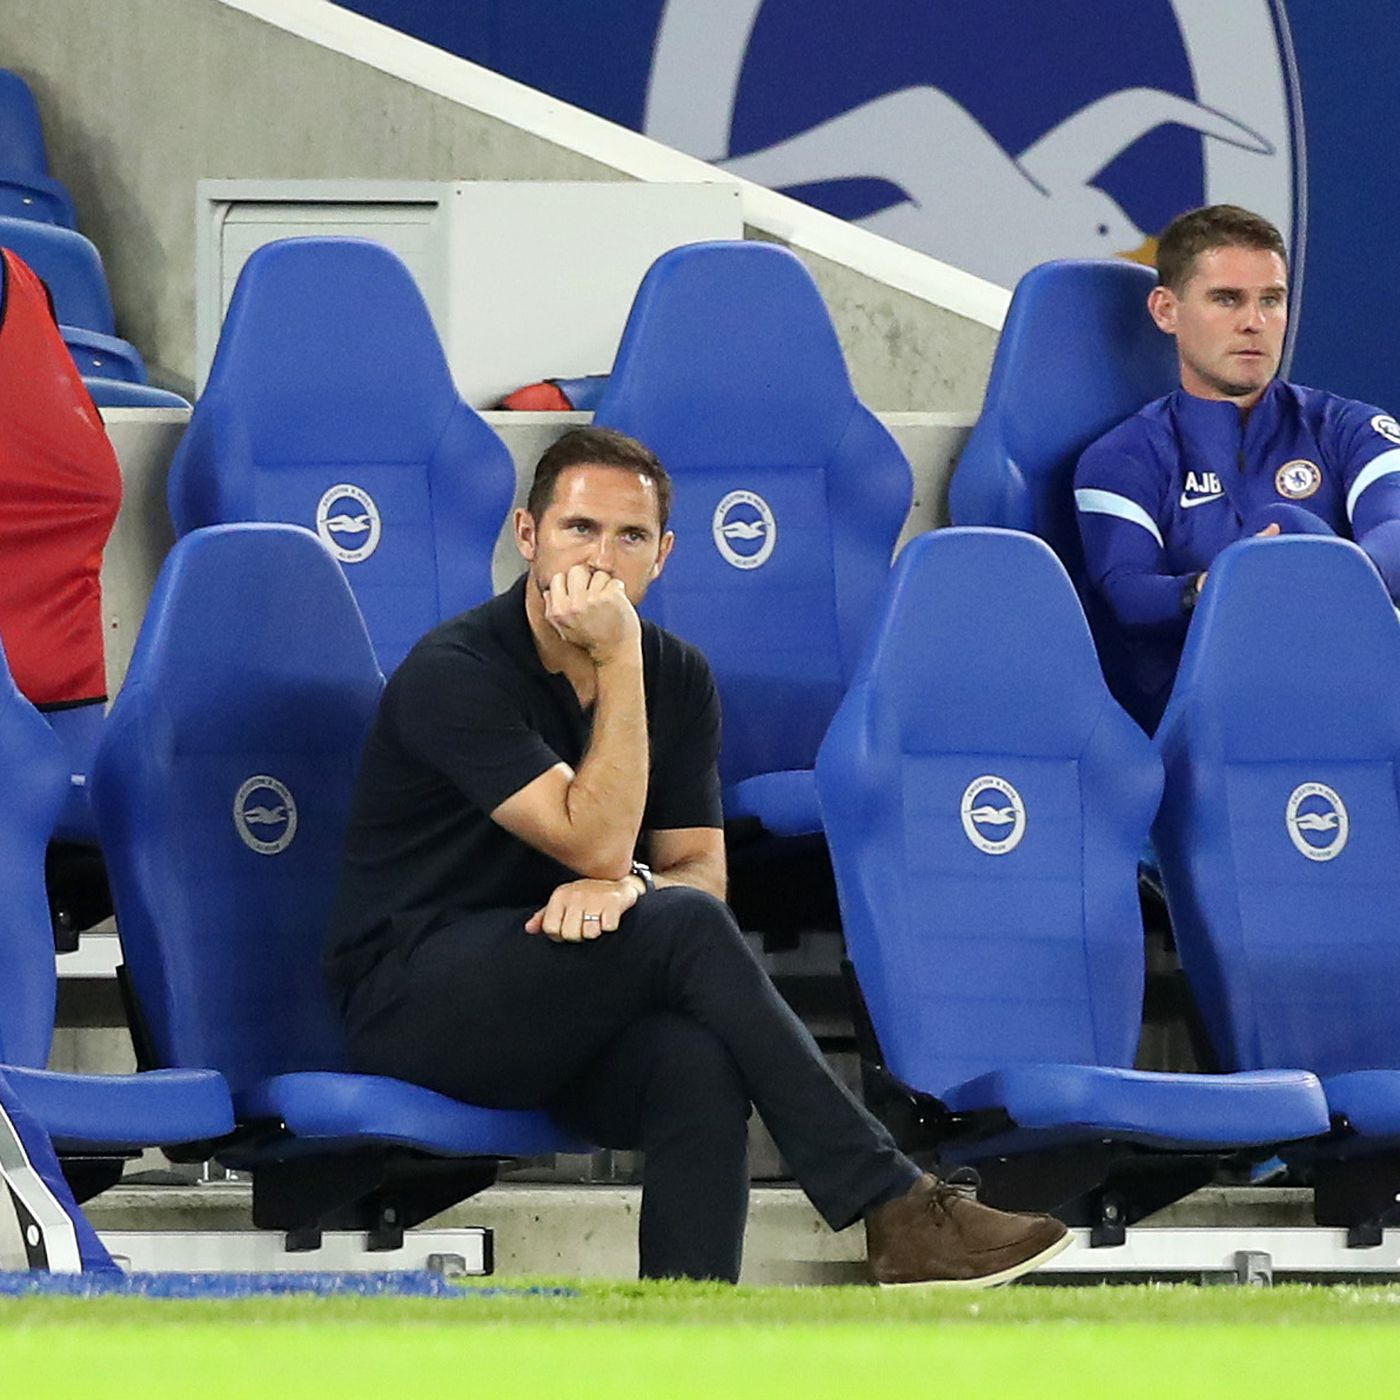 EPL: Lampard speaks on getting sacked after 2-0 defeat at Leicester City